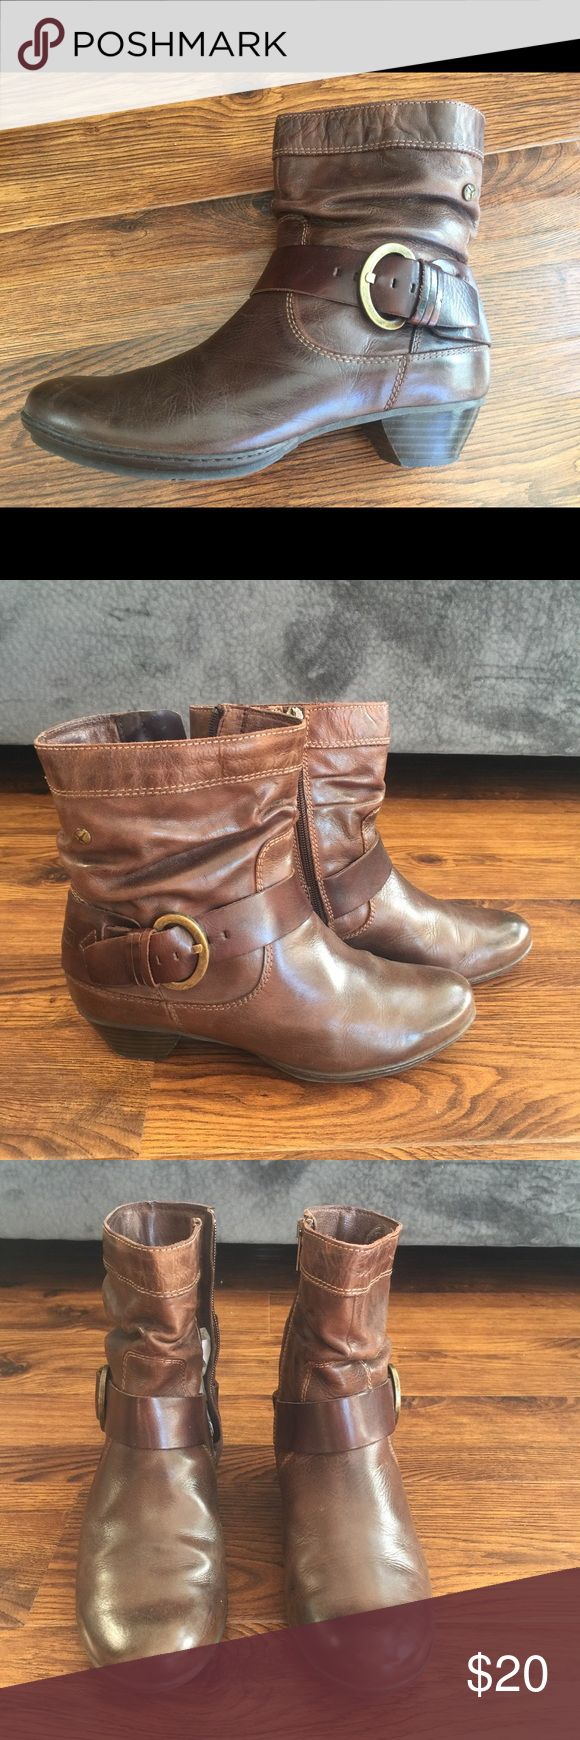 Pikolinos Brown Leather Ankle Boots Brown leather boots size 38 PIKOLINOS Shoes Ankle Boots & Booties